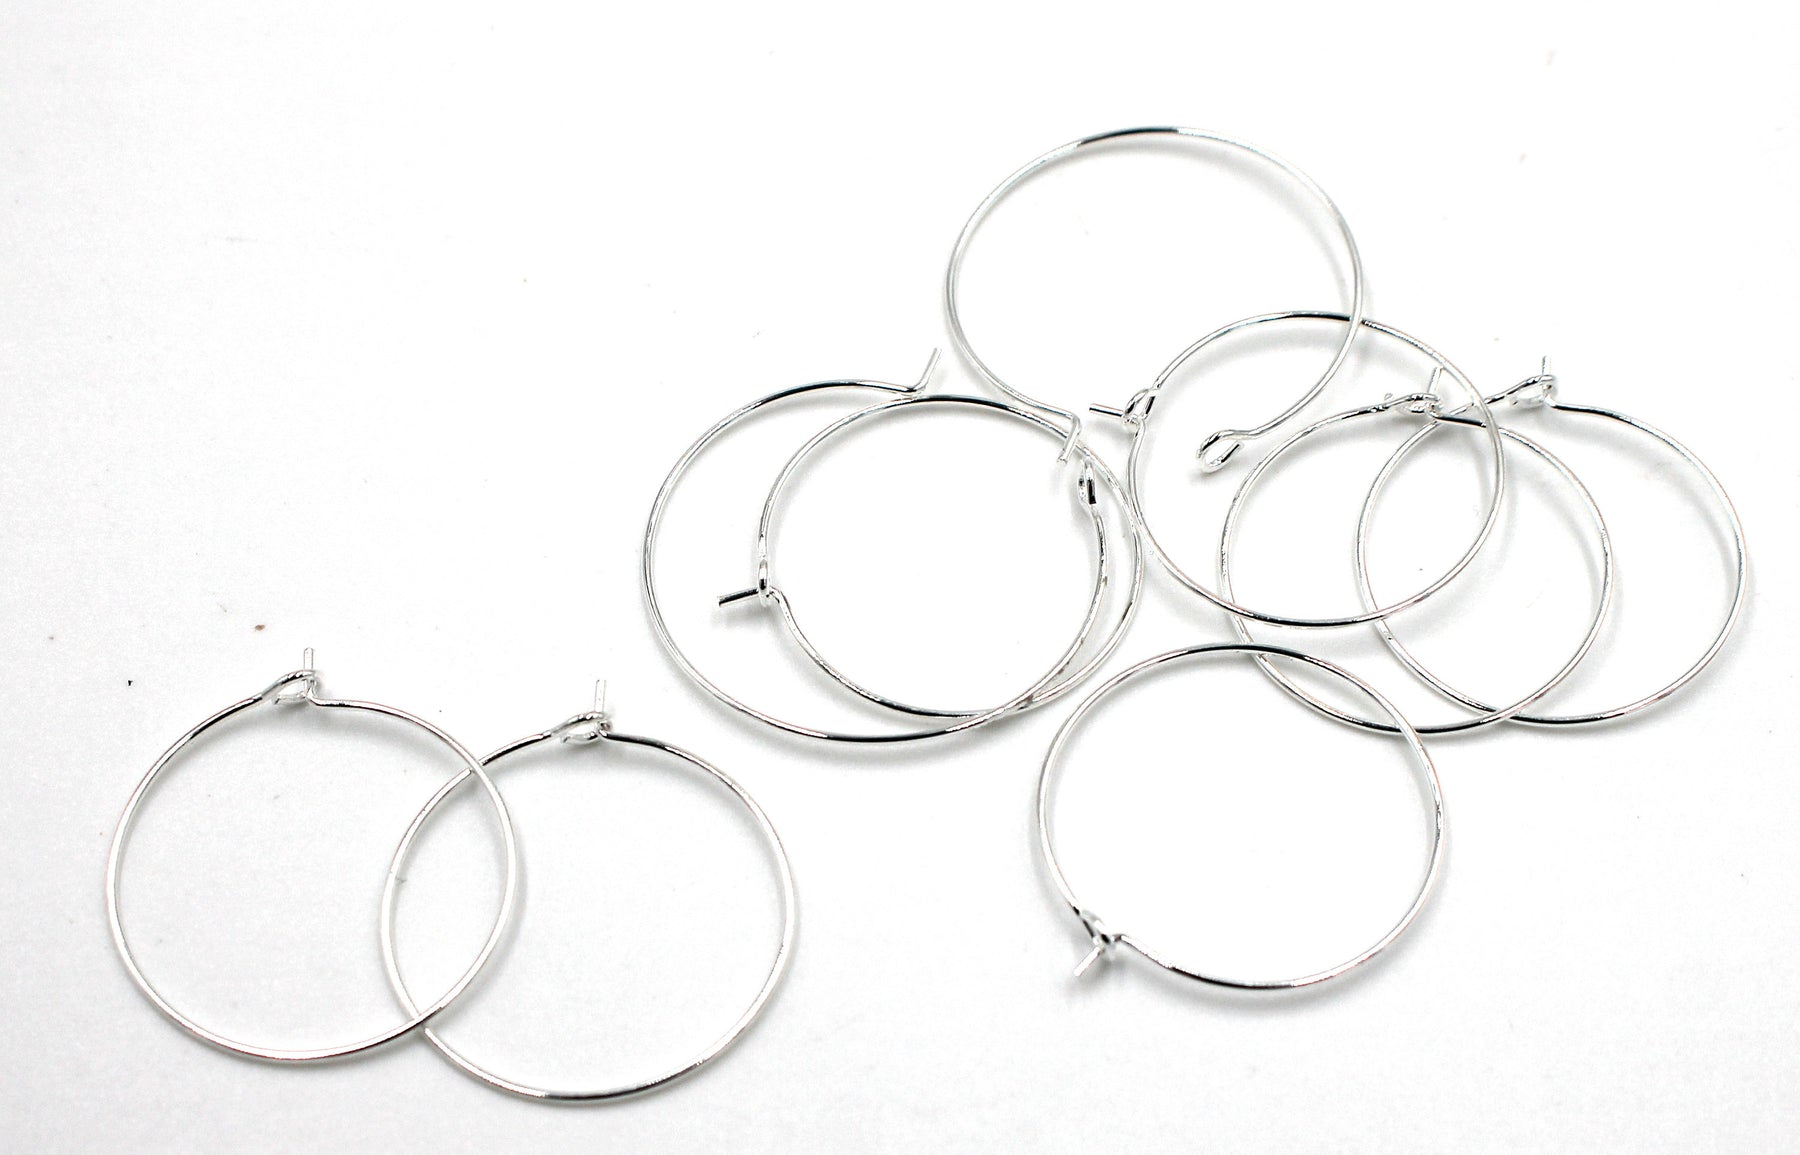 earring hoops, silver plated brass, 25 x 25mm, 20 pieces, silver earrings, ear ring hoops, hoop ear ring,